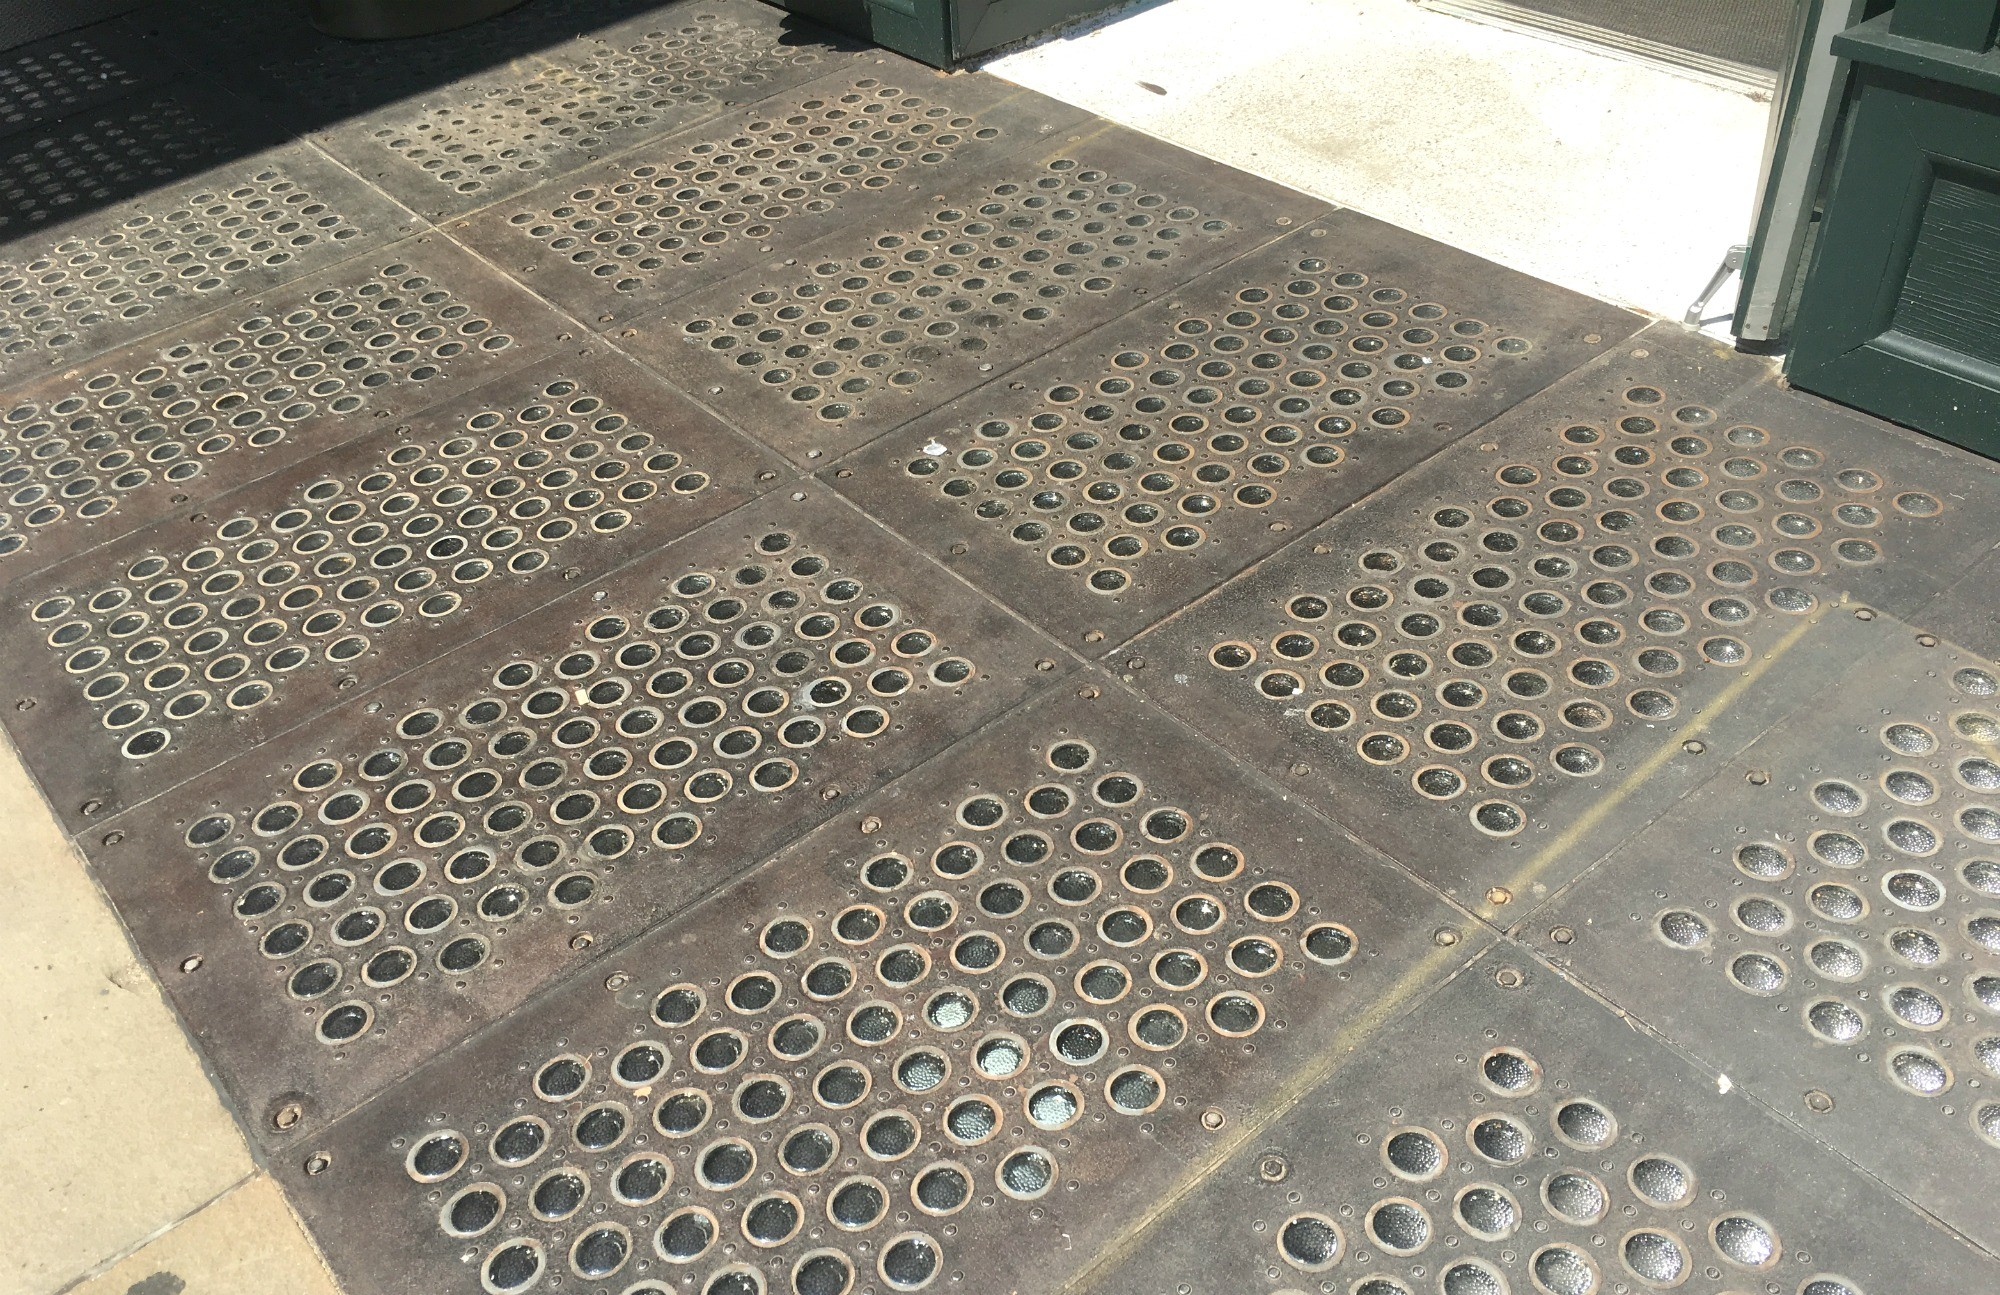 Downtown's historic glass sidewalks may become a lost relic